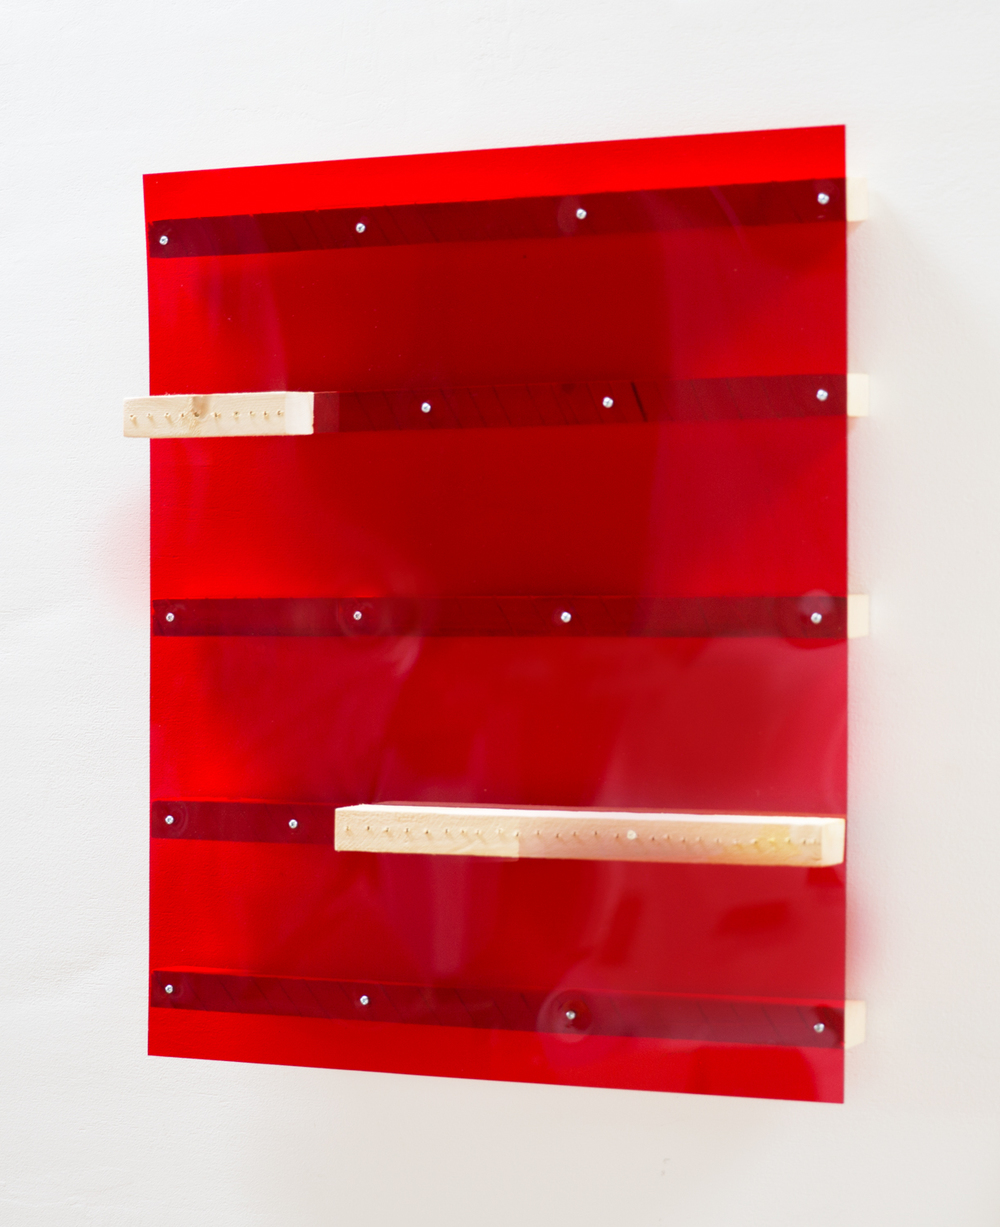 Kishio Suga  Layered Edge of Space  1994 Plastic and wood 25 ⅝h x 21 ⅝w x 3d in KS015